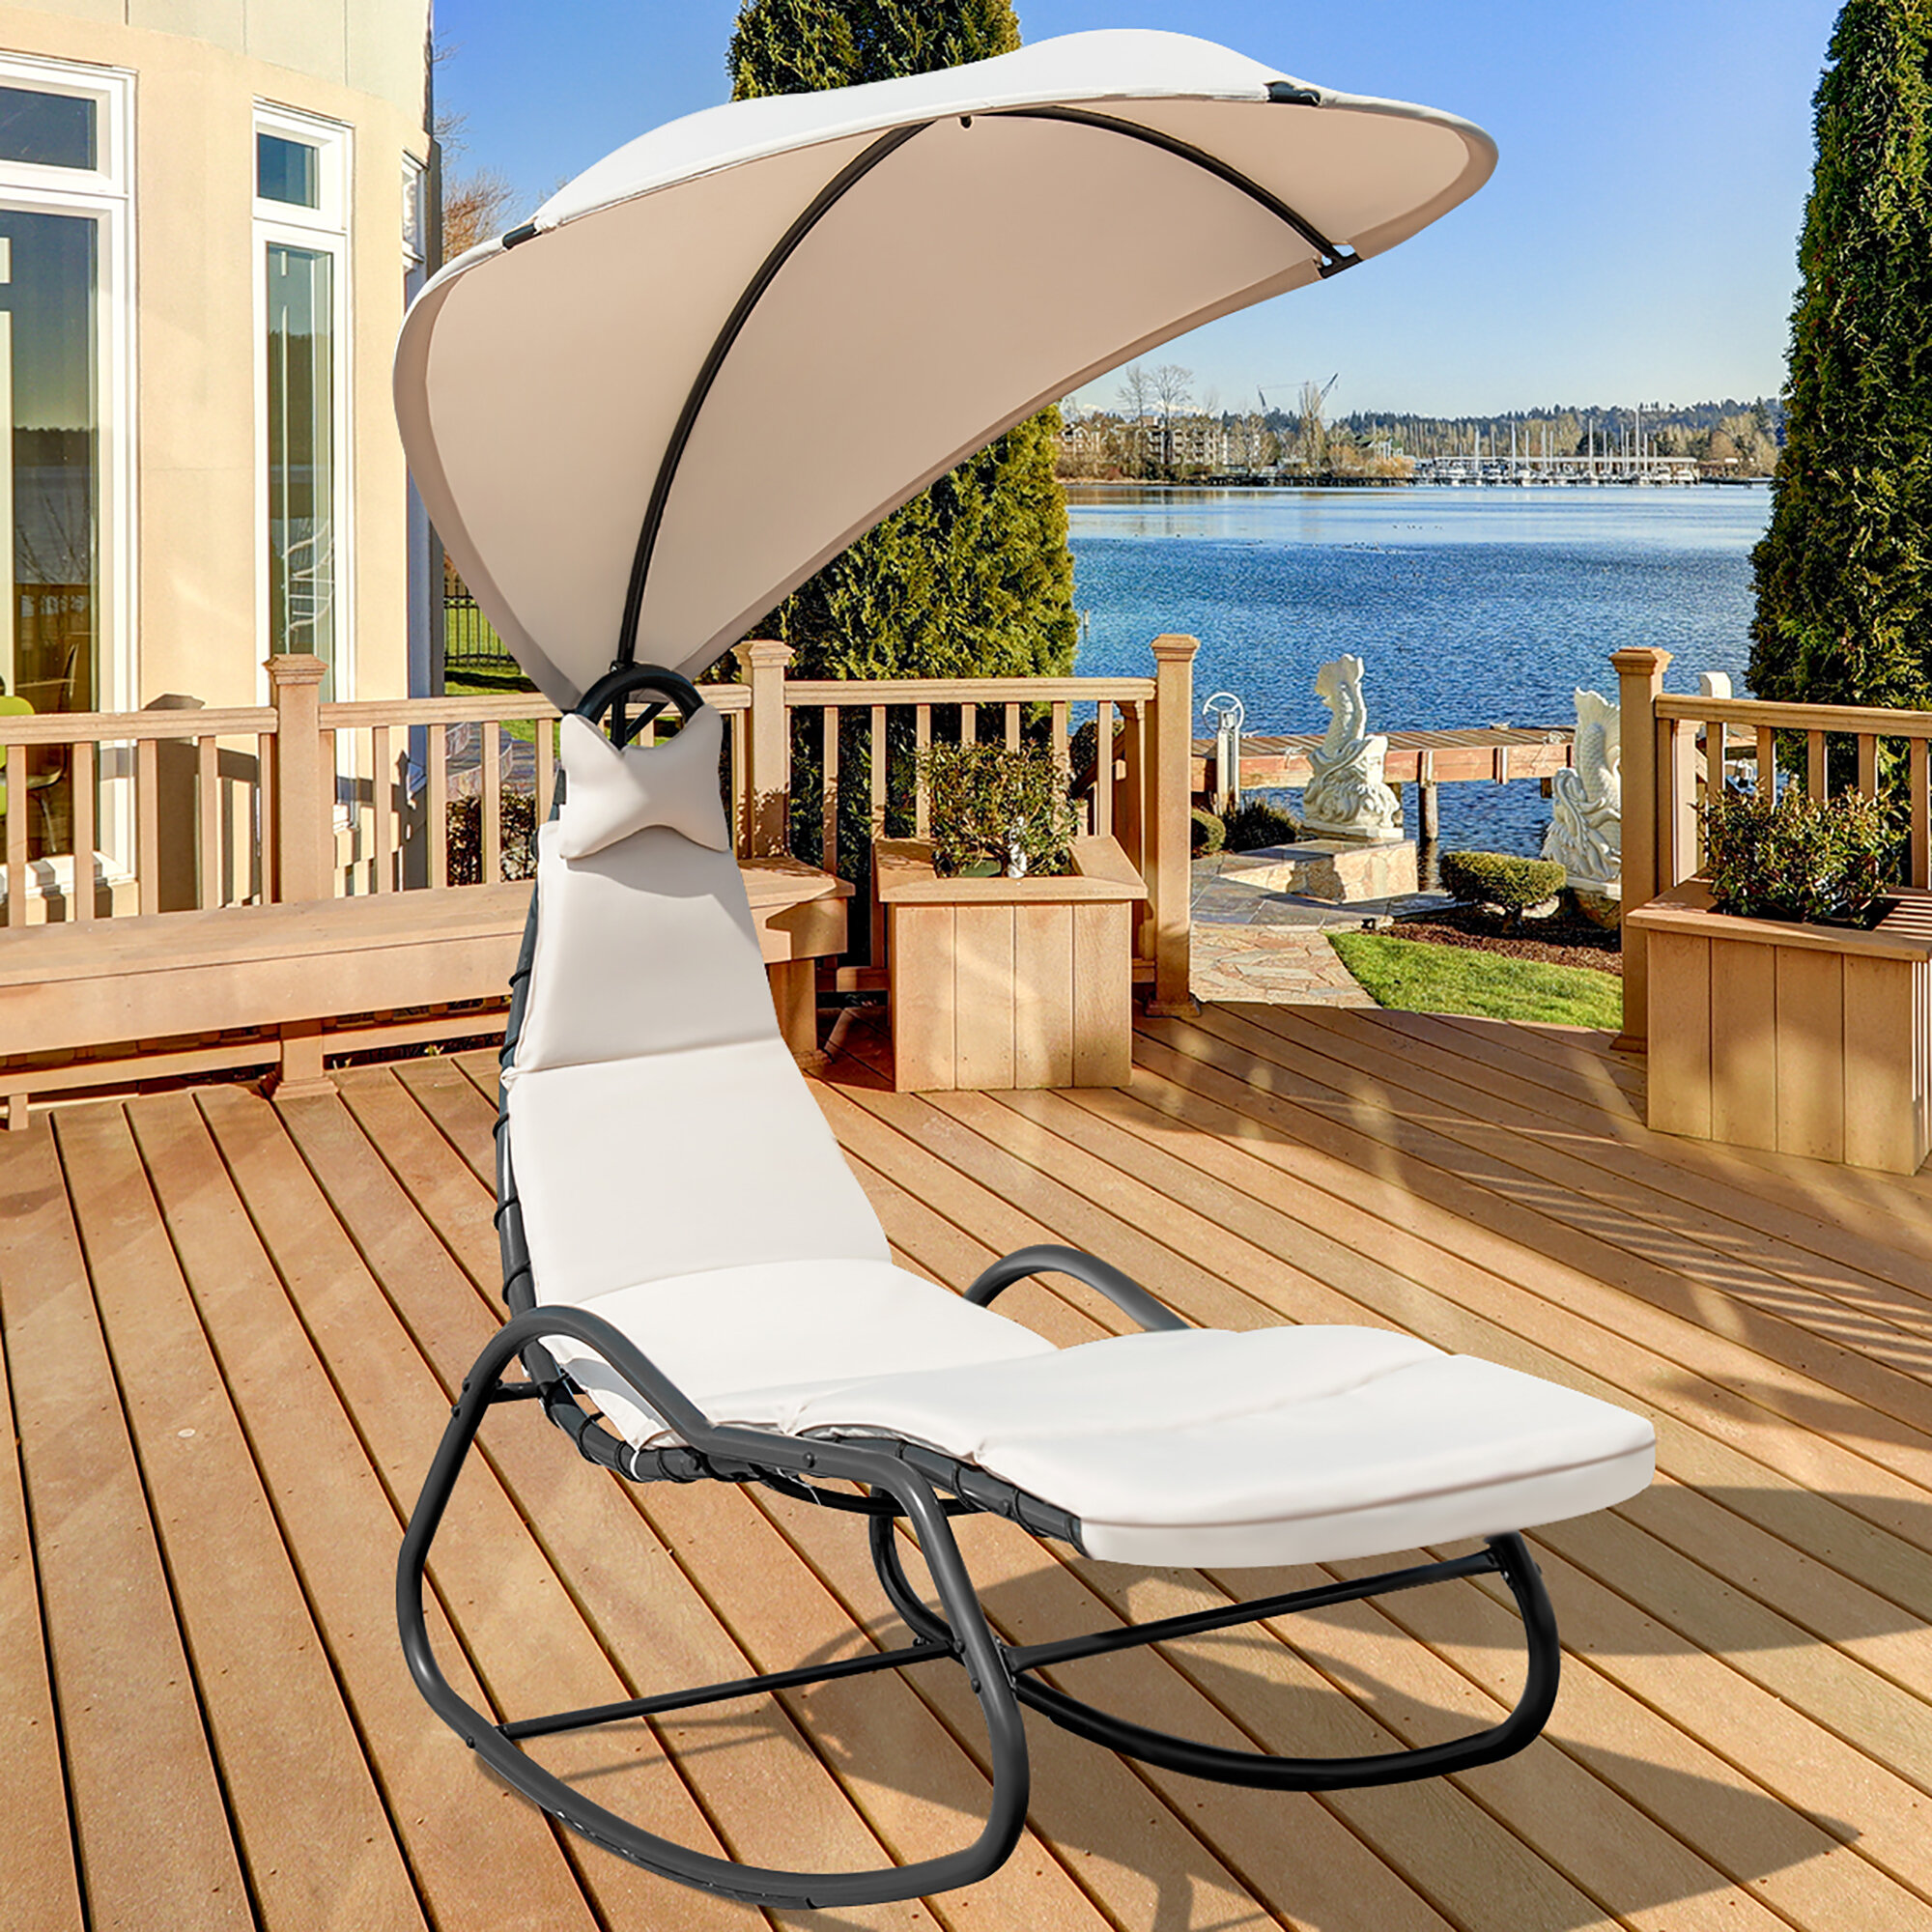 Arlmont Co Patio Hanging Chaise Lounge Chair Swing Hammock Canopy Thick Cushion Turquoise Reviews